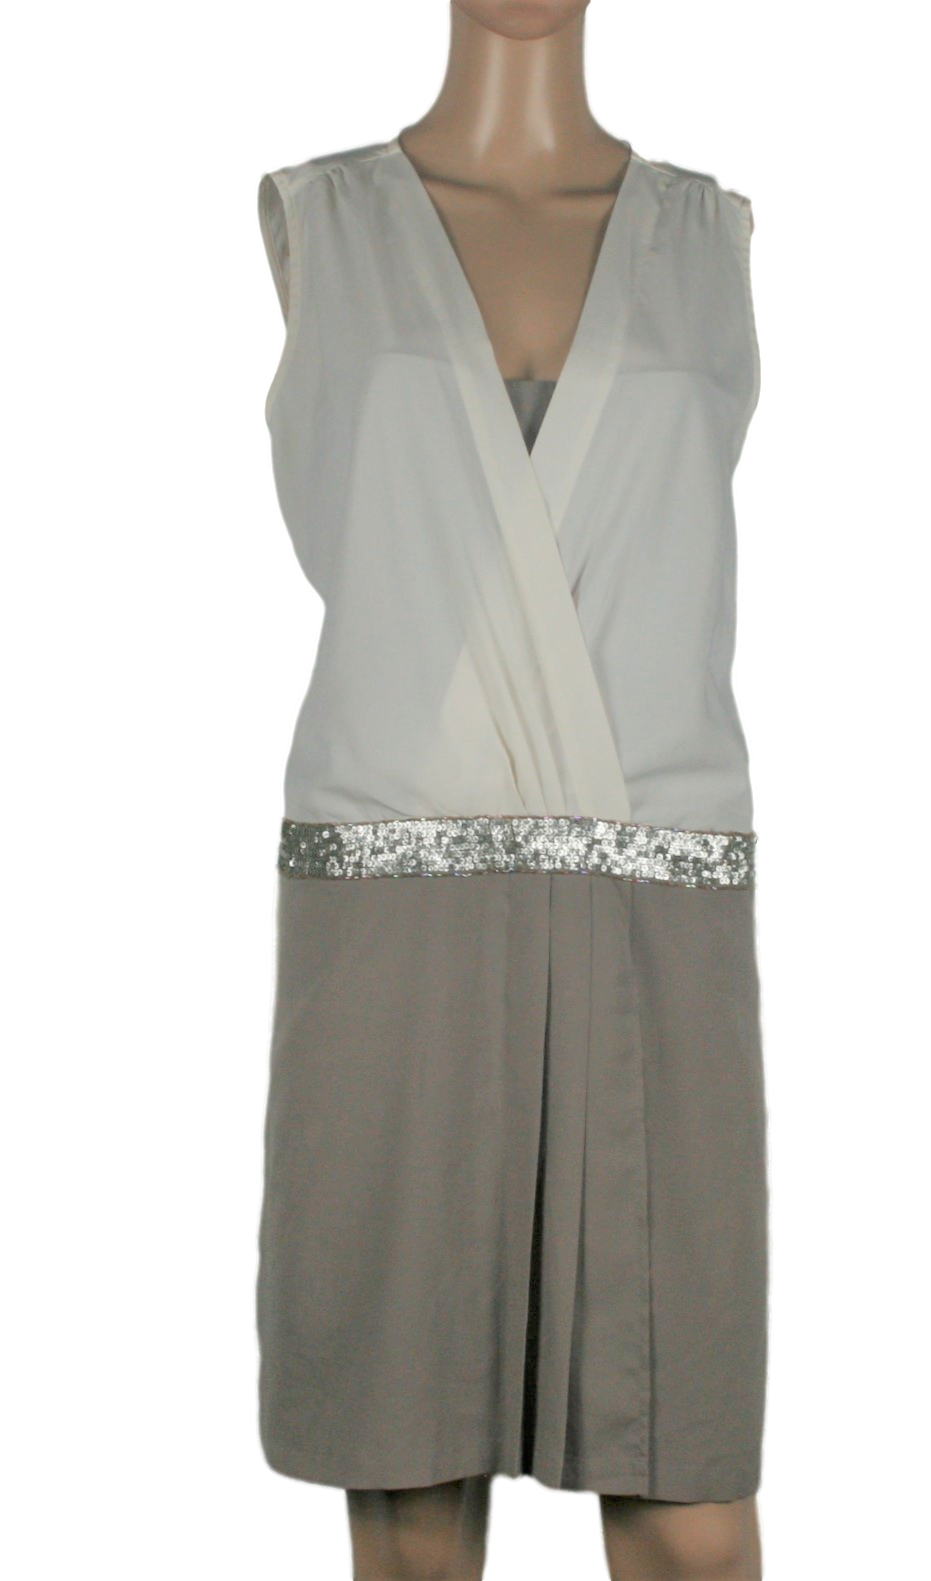 Robe Promod -Taille 44